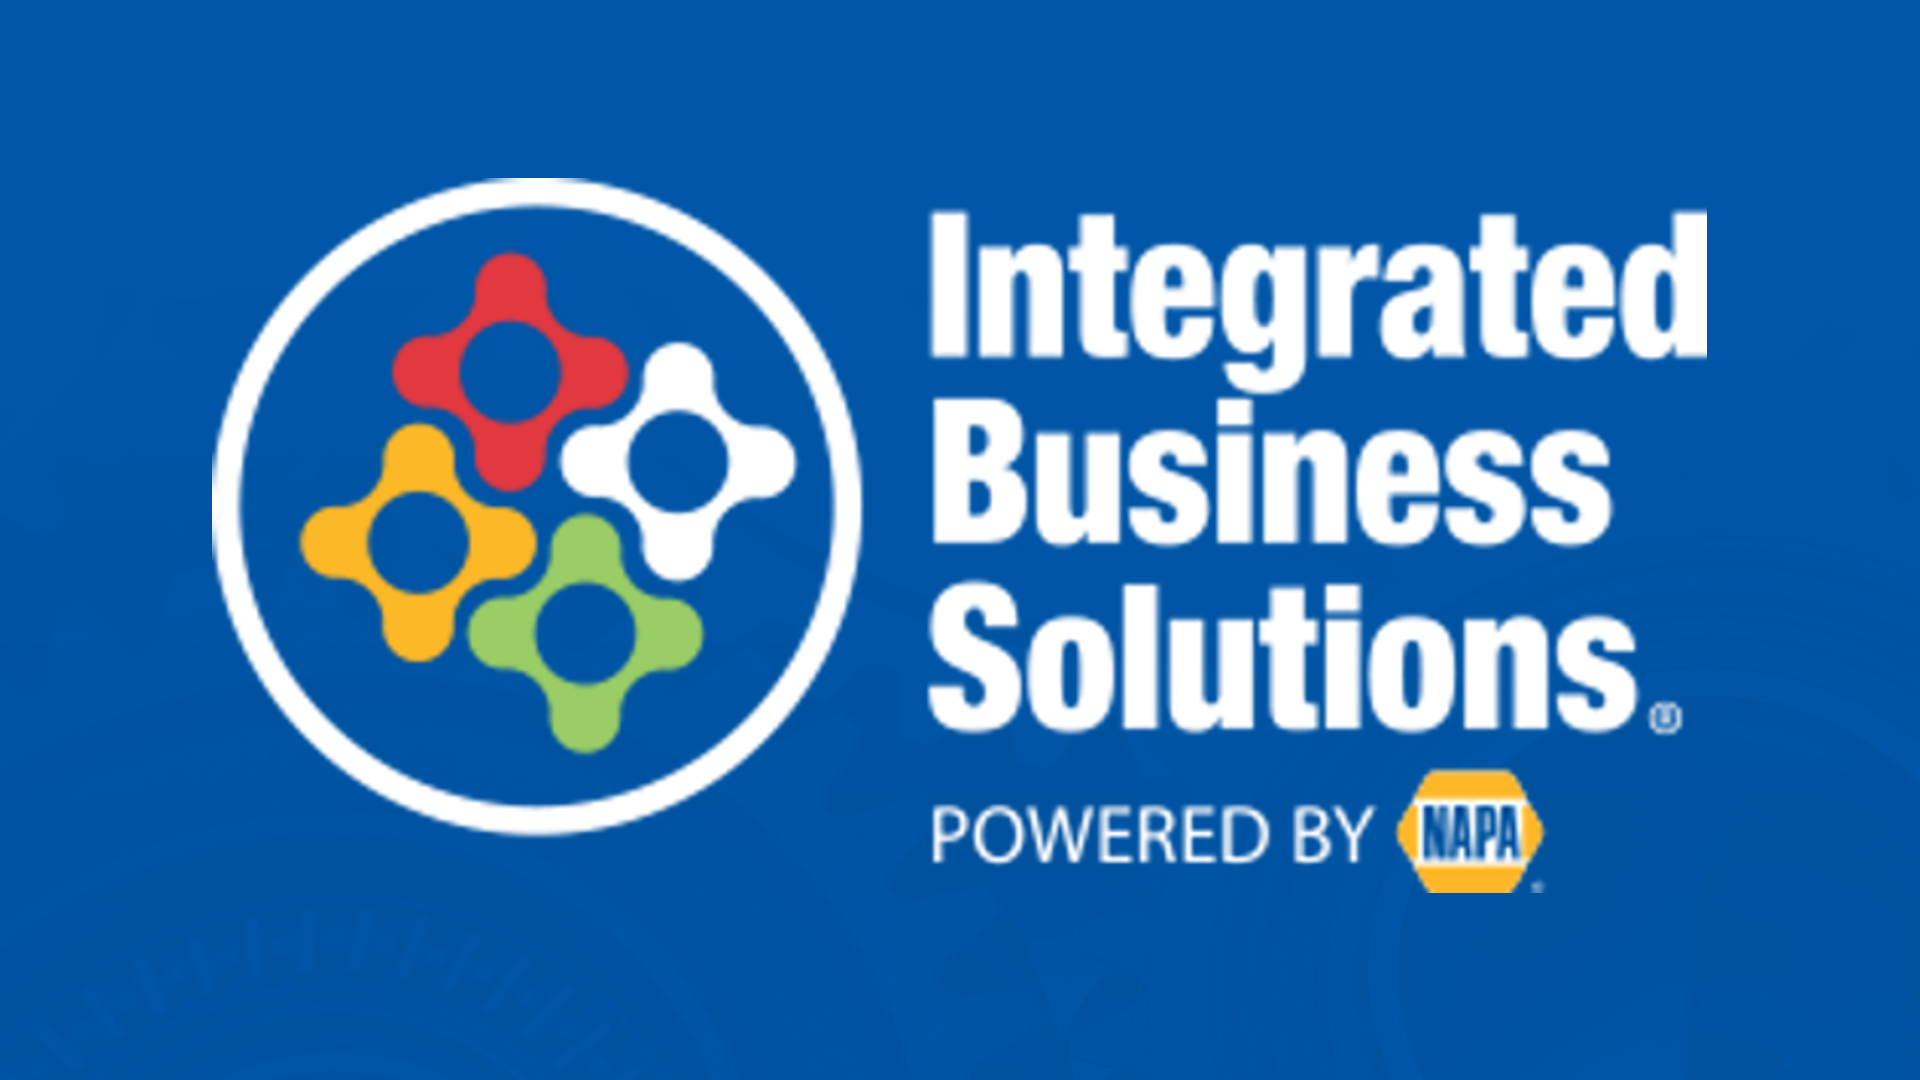 NAPA Integrated Business Solutions - Home